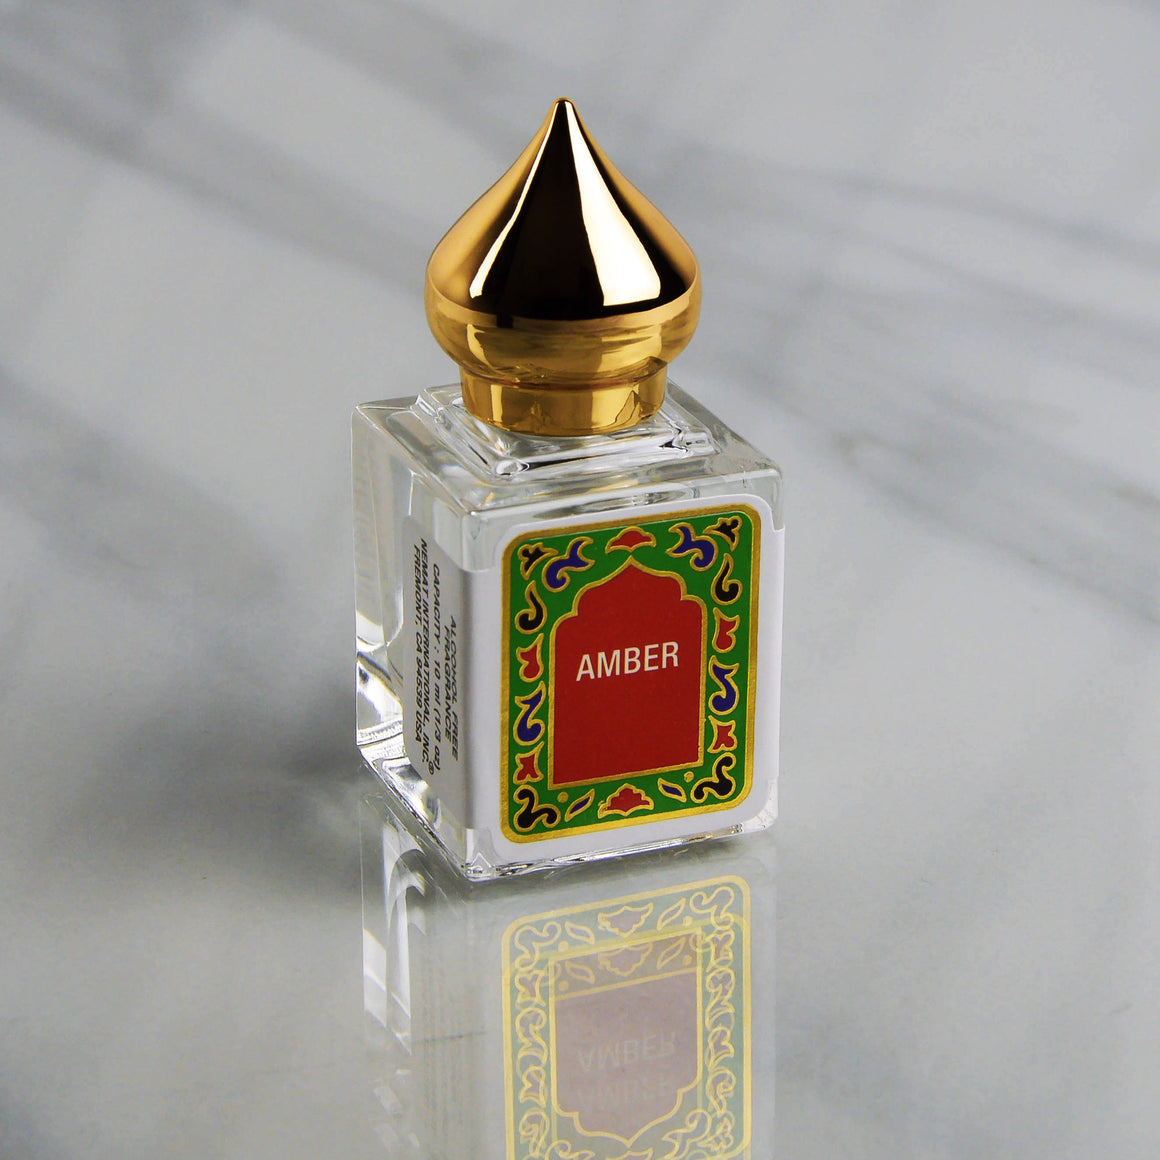 Amber - exotic perfumes and fragrances by n̩mat